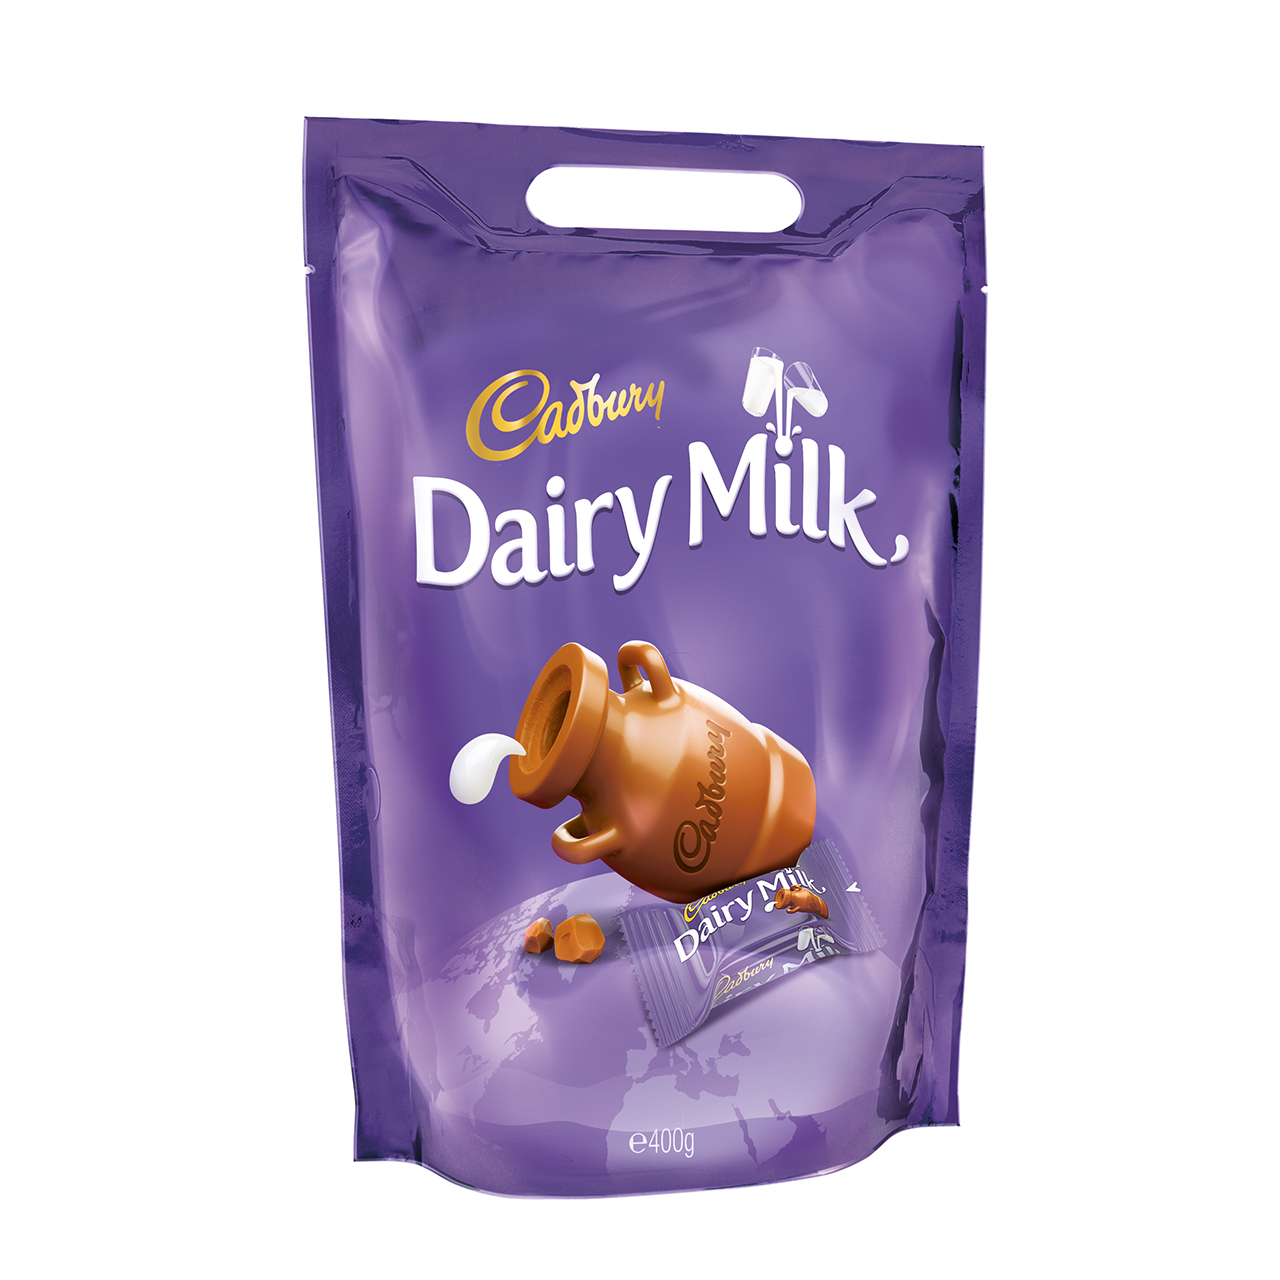 Cadbury Dairy Milk Bag 400g